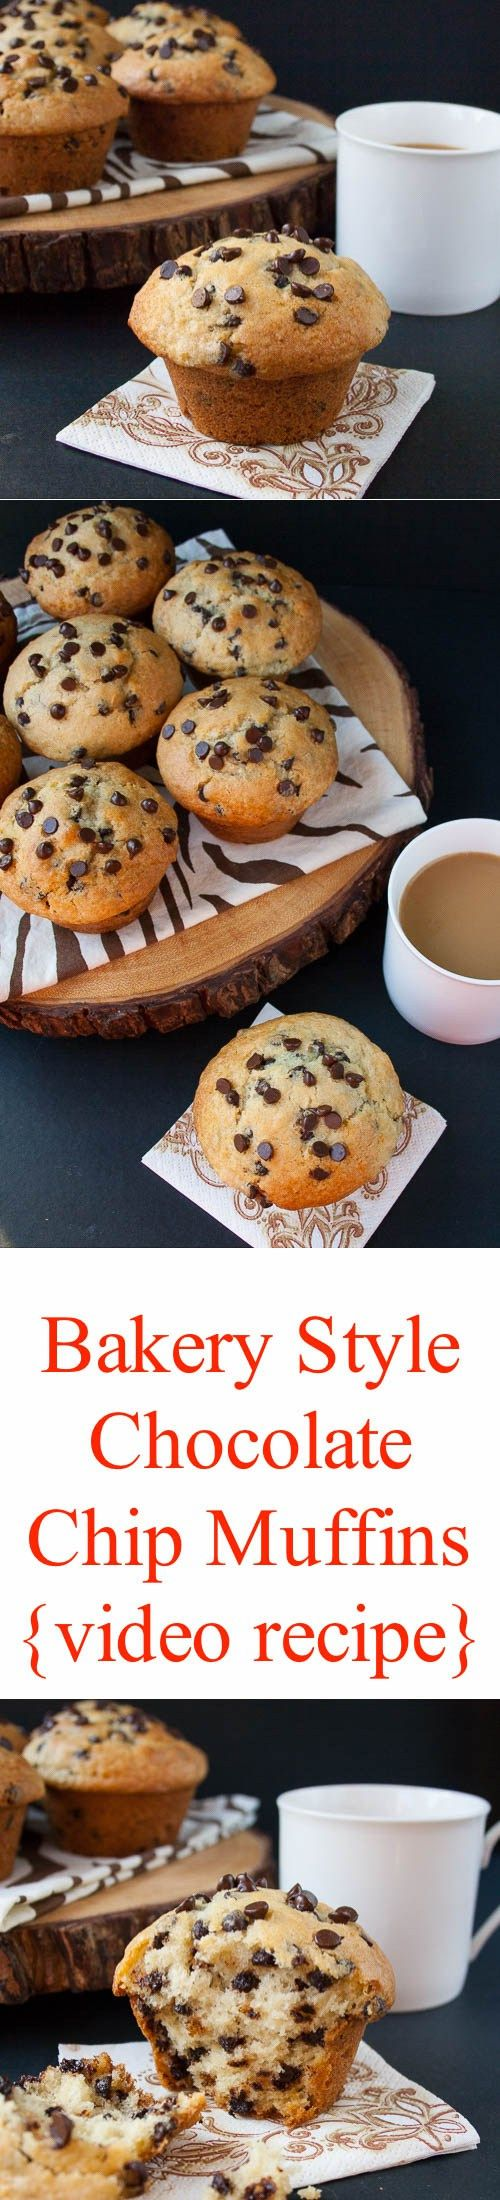 Soft and fluffy, loaded with chocolate chips with a crispy sky-high muffin top. See how easy it is to make these bakery style muffins at home.